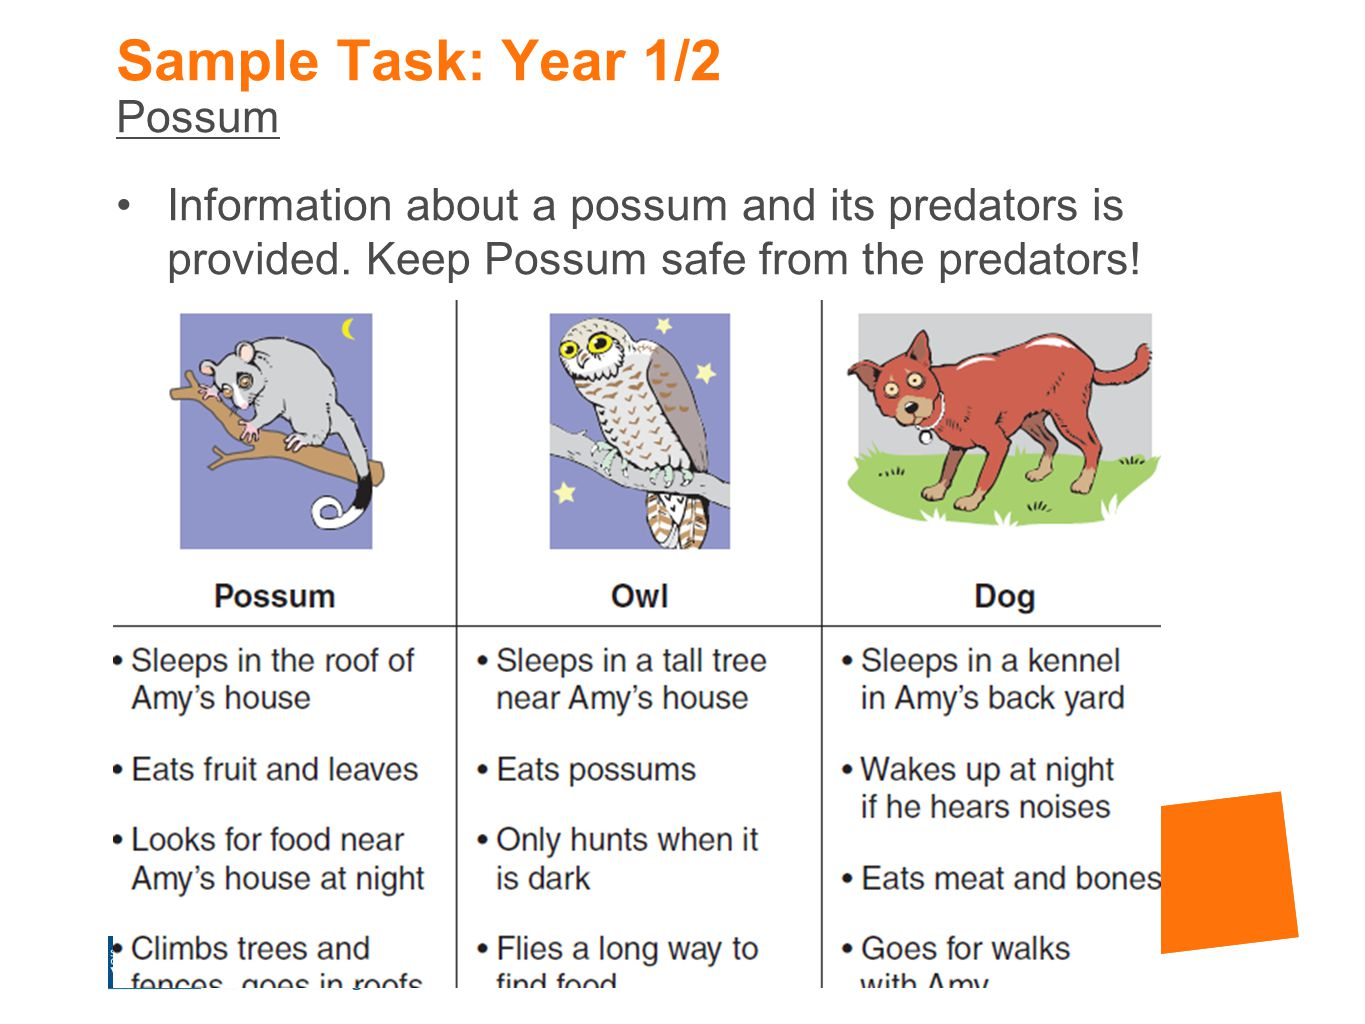 Sample Task: Year 1/2 Possum